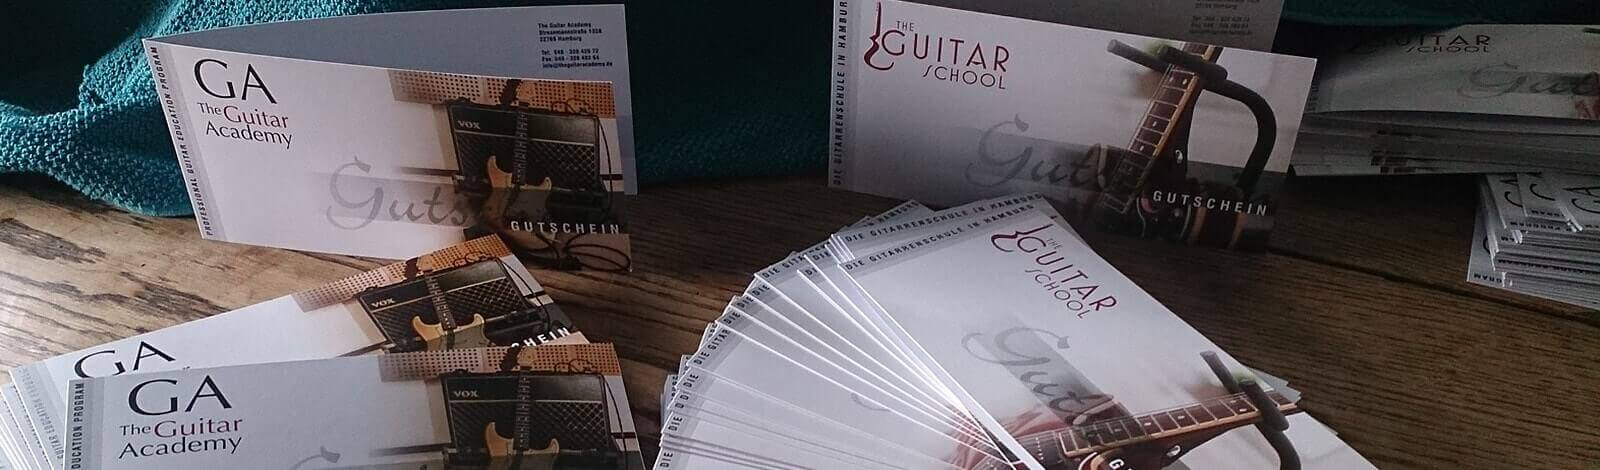 Gutscheine verschenken - The Guitar School